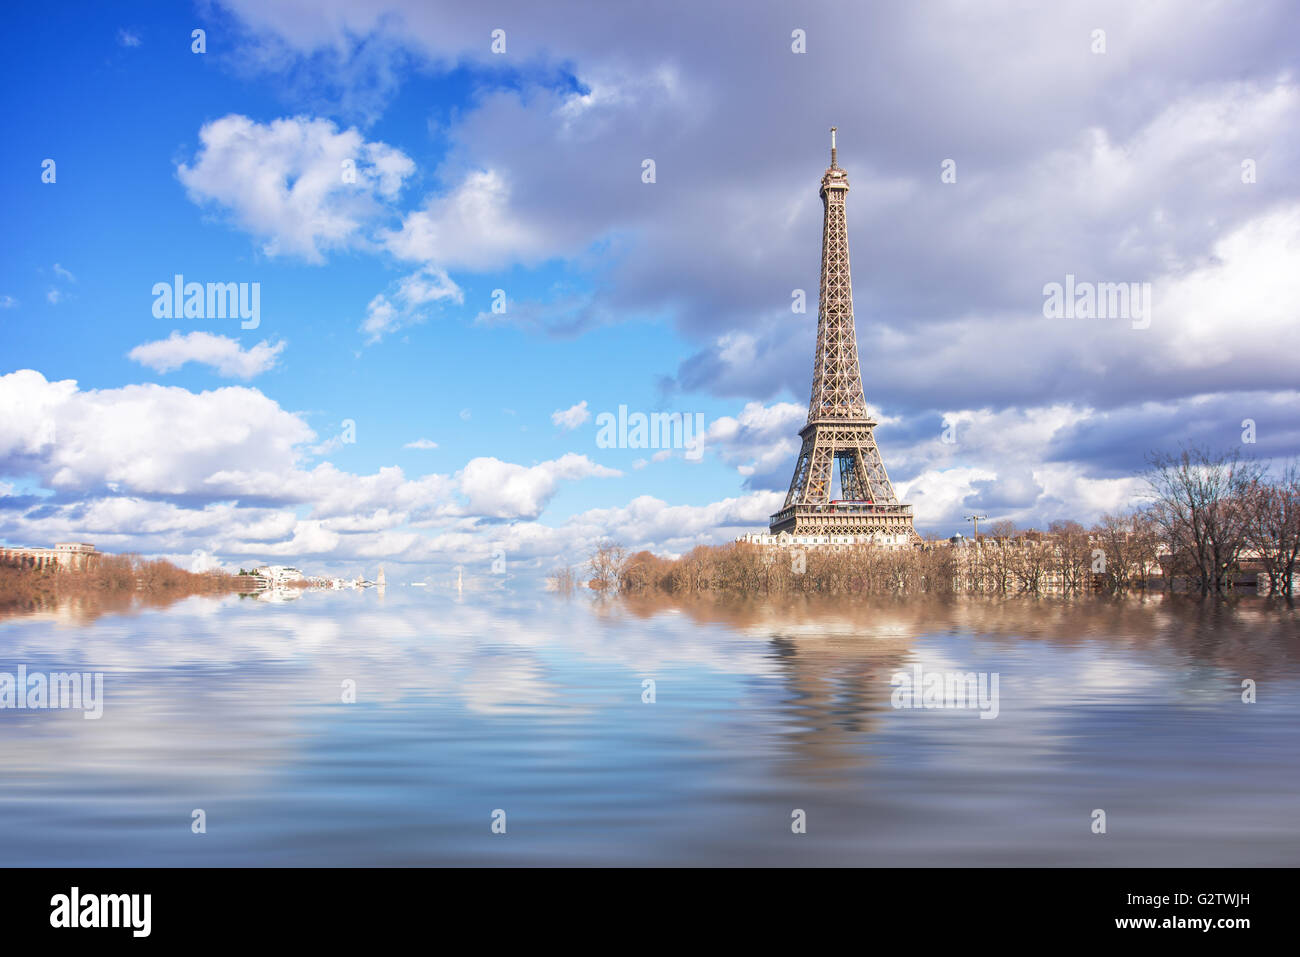 Flood illustration of the river Seine, Eiffel tower, Paris, France - Stock Image